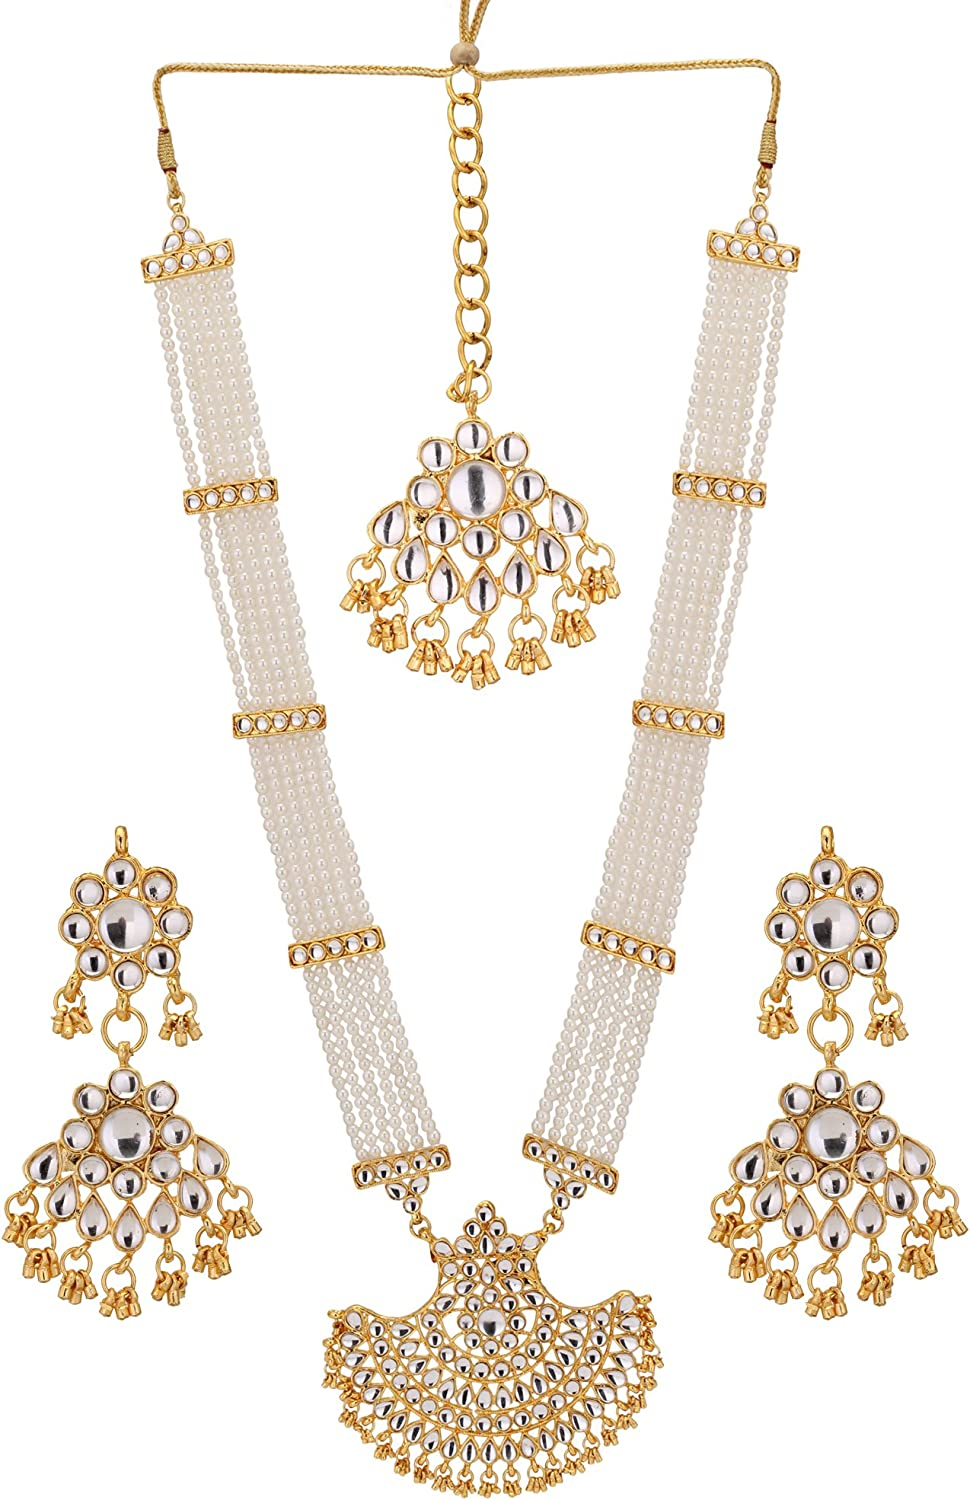 Jwellmart Indian Diva Collection Pearl Rani Haar Necklace Set in Kundan Stones for Women and Girls